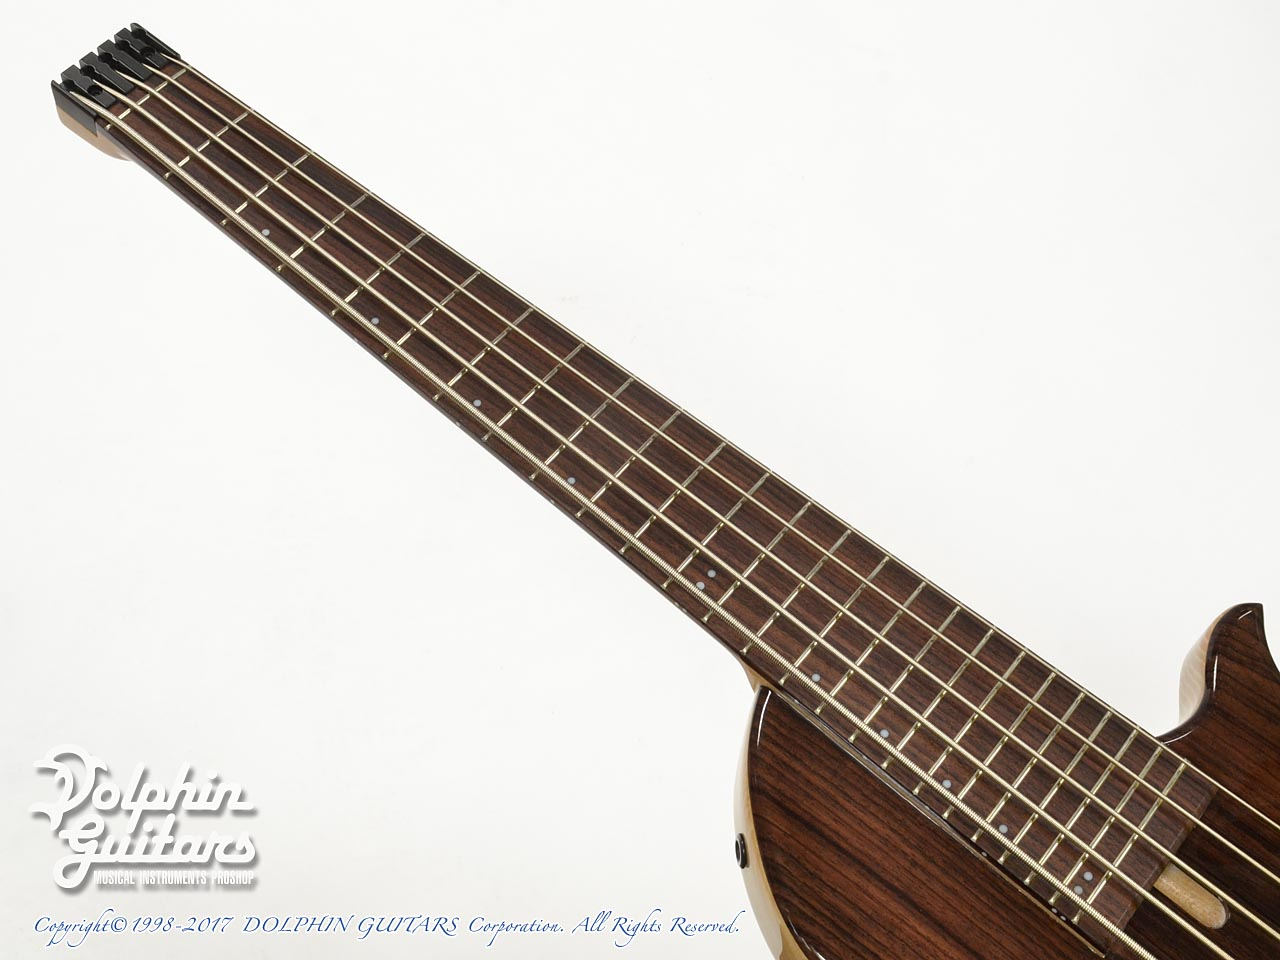 Charo's: CH-B5 Compact Headless Bass (Indian Rosewood) (5)